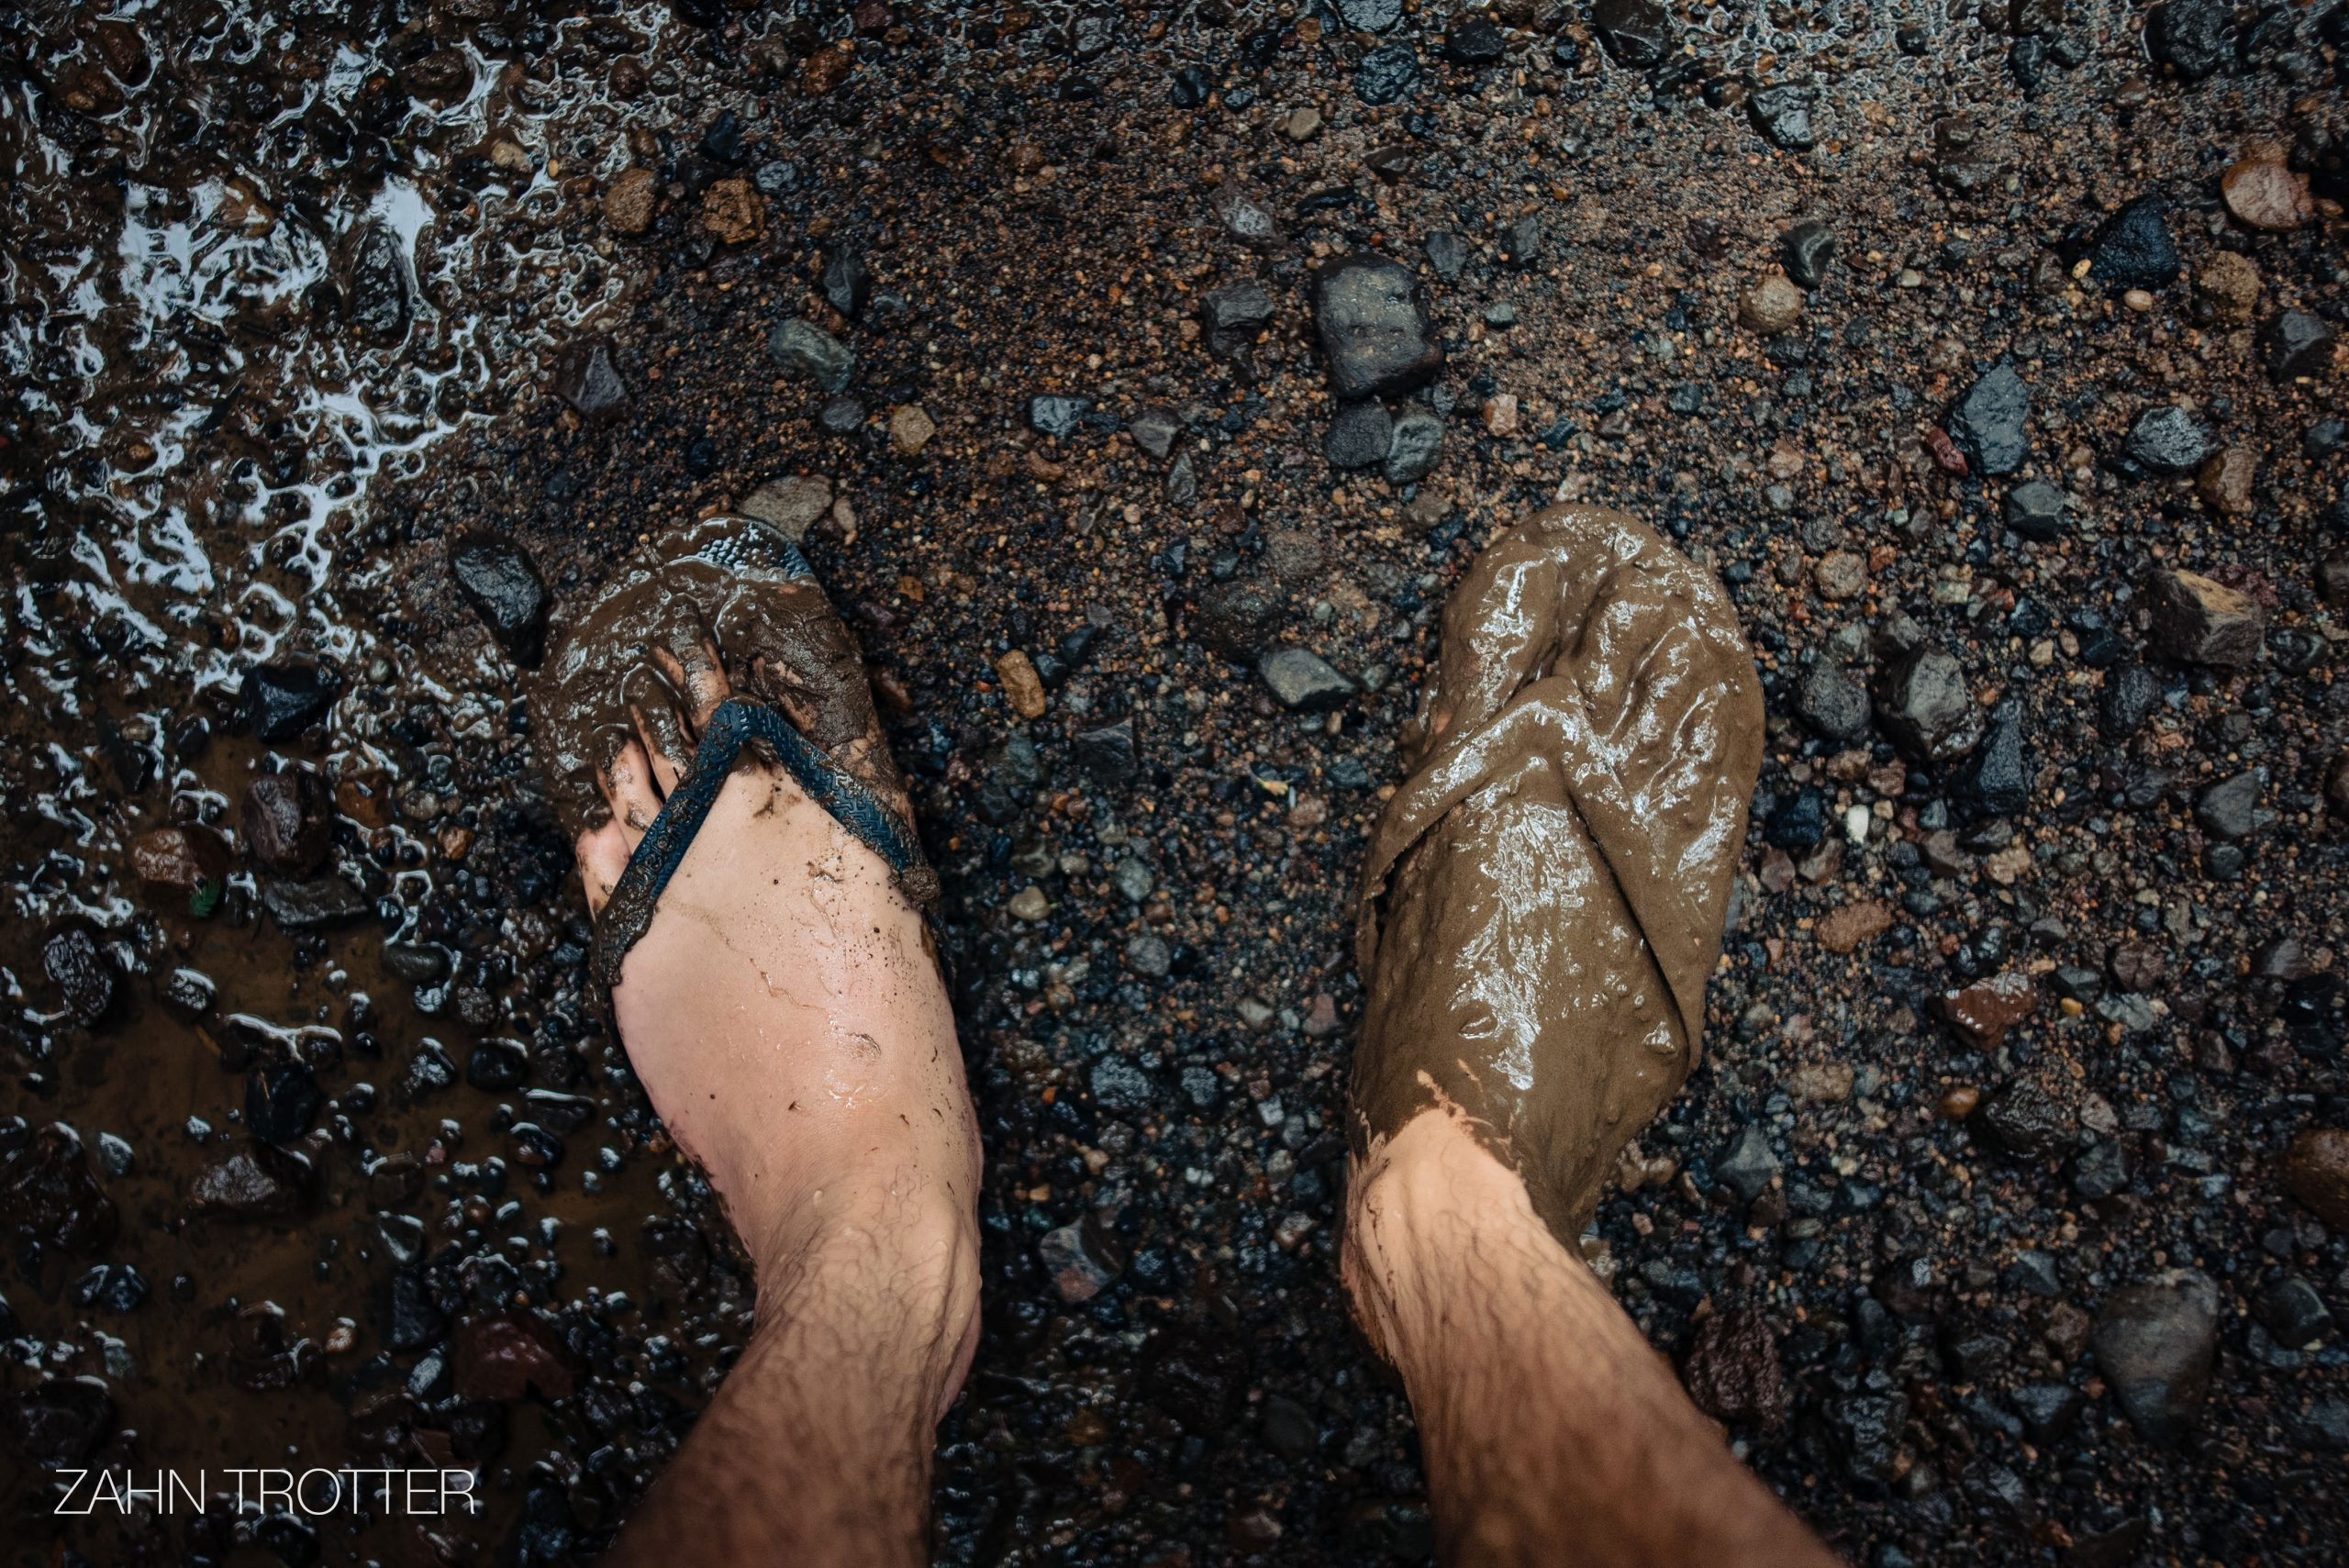 A man's muddy feet and flip flops